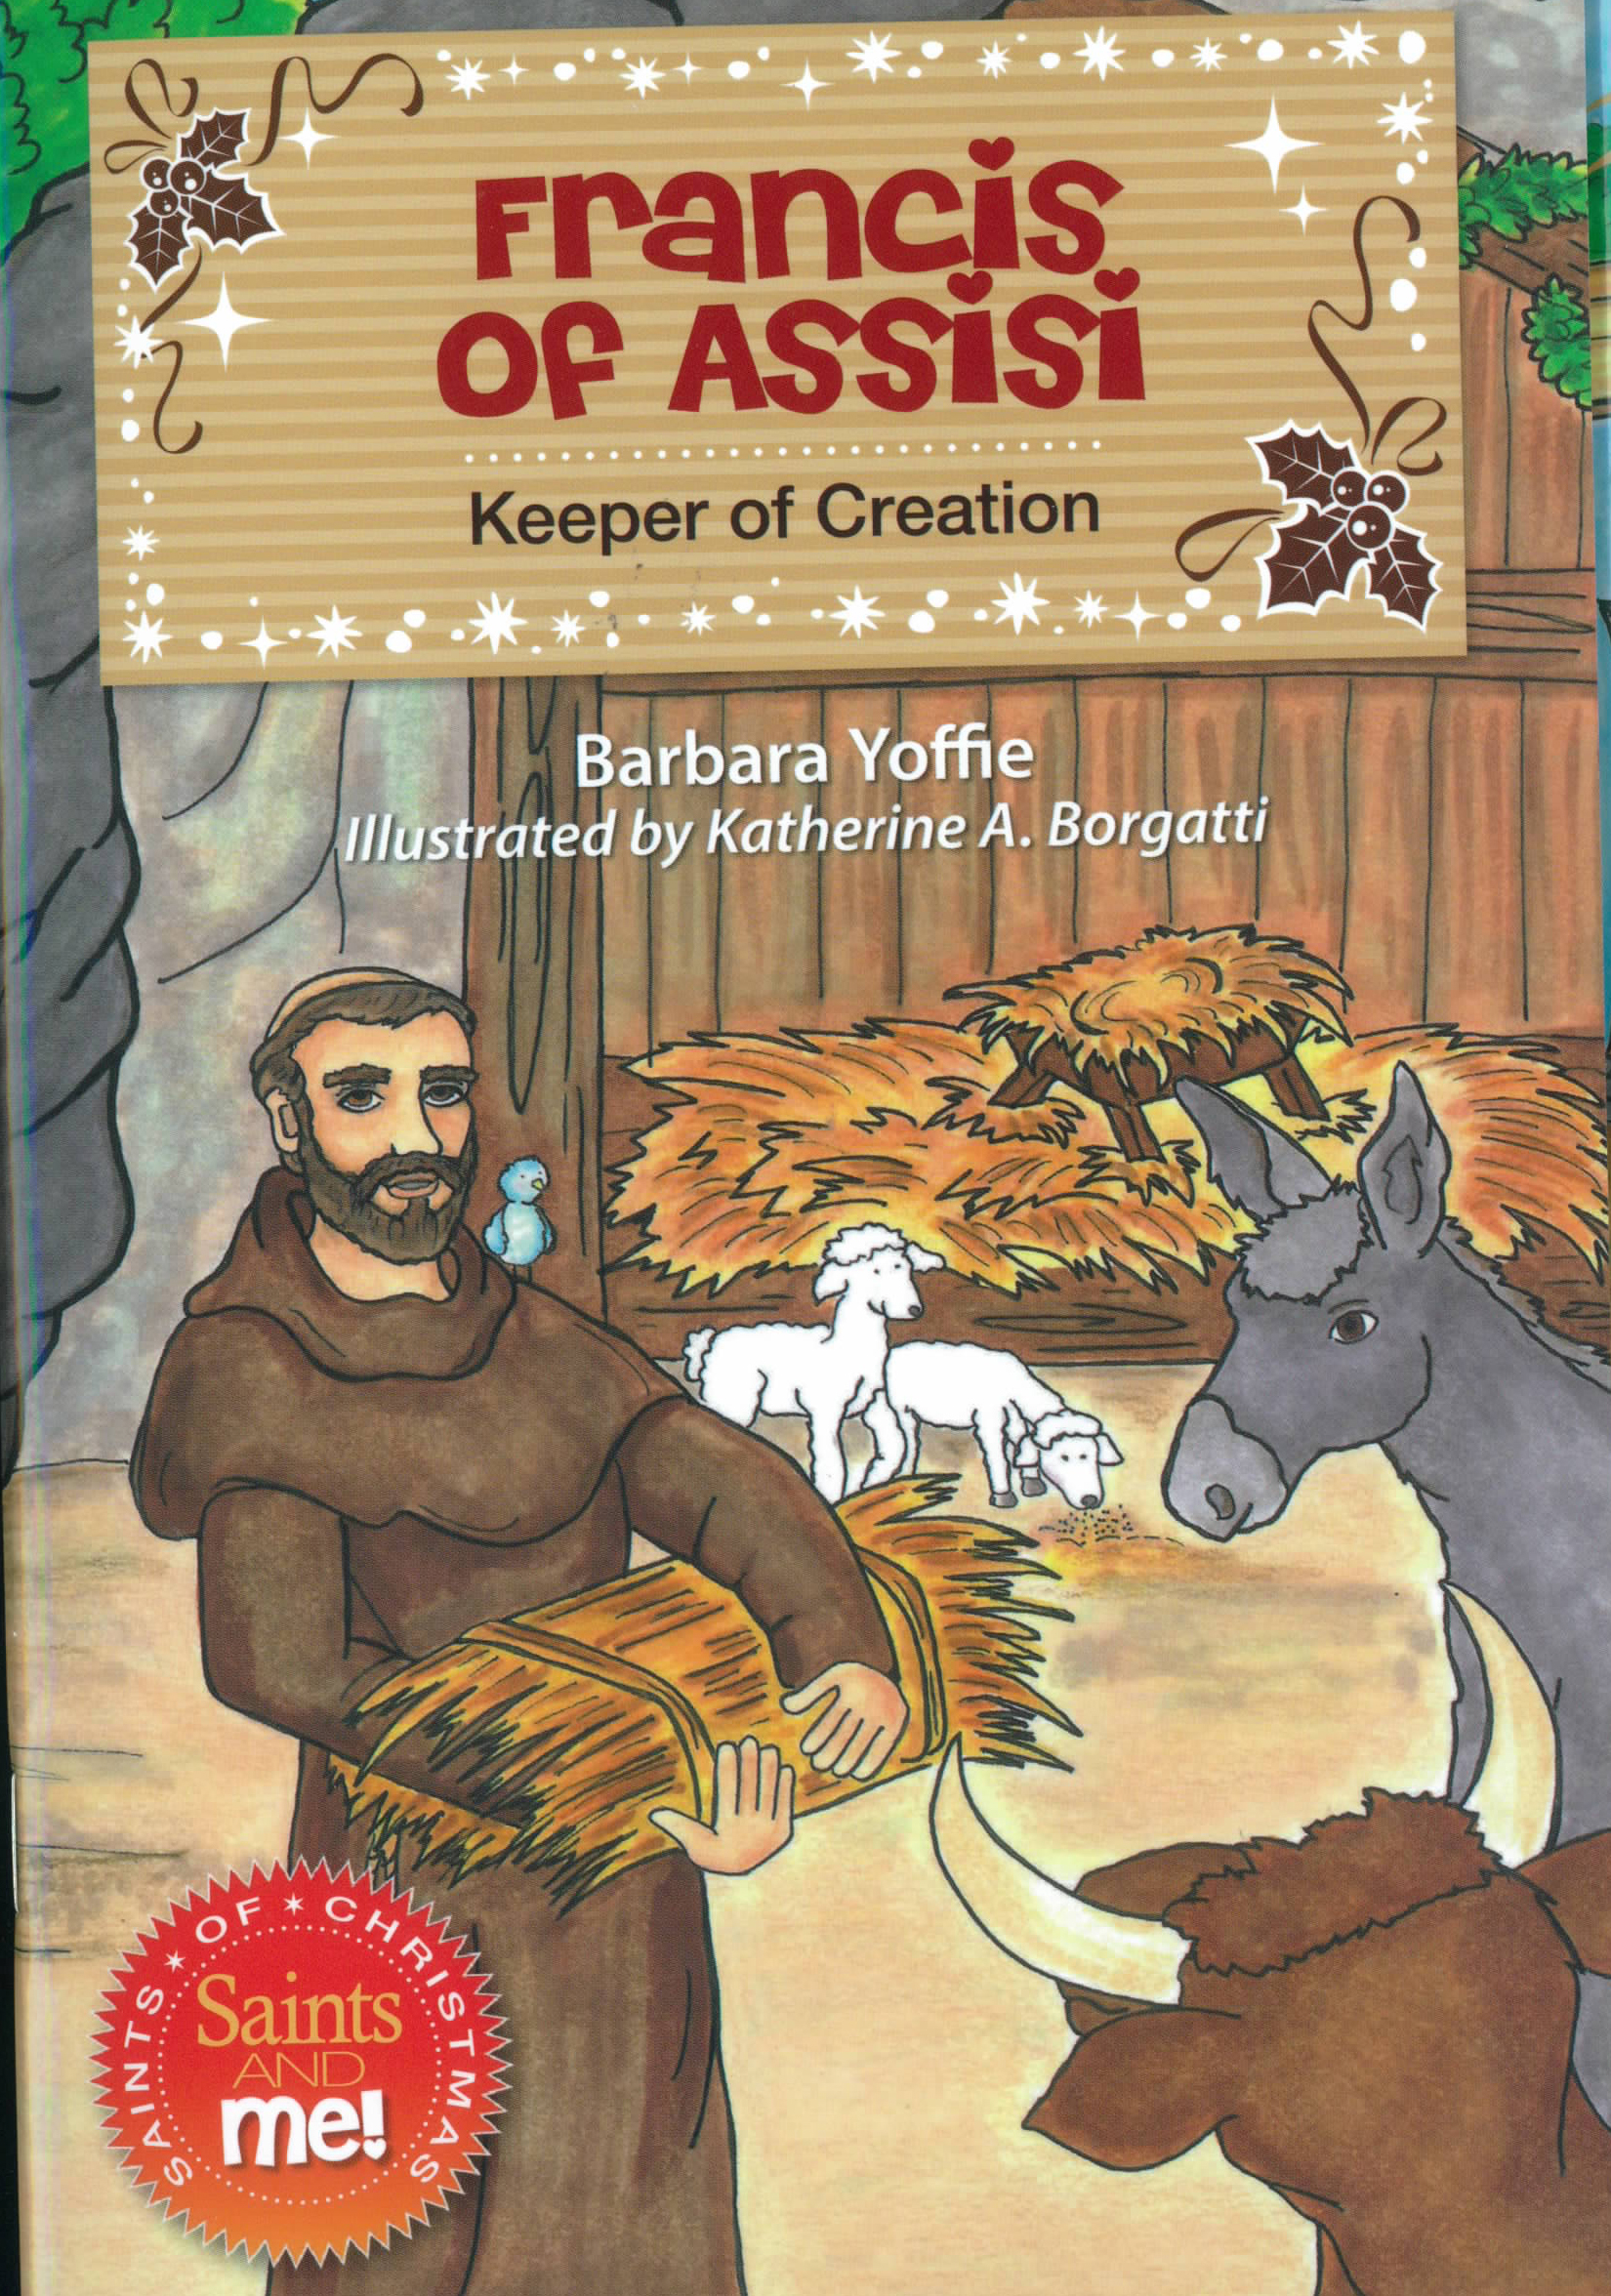 Francis of Assisi: Keeper of Creation by Barbara Yoffie 108-9780764823275